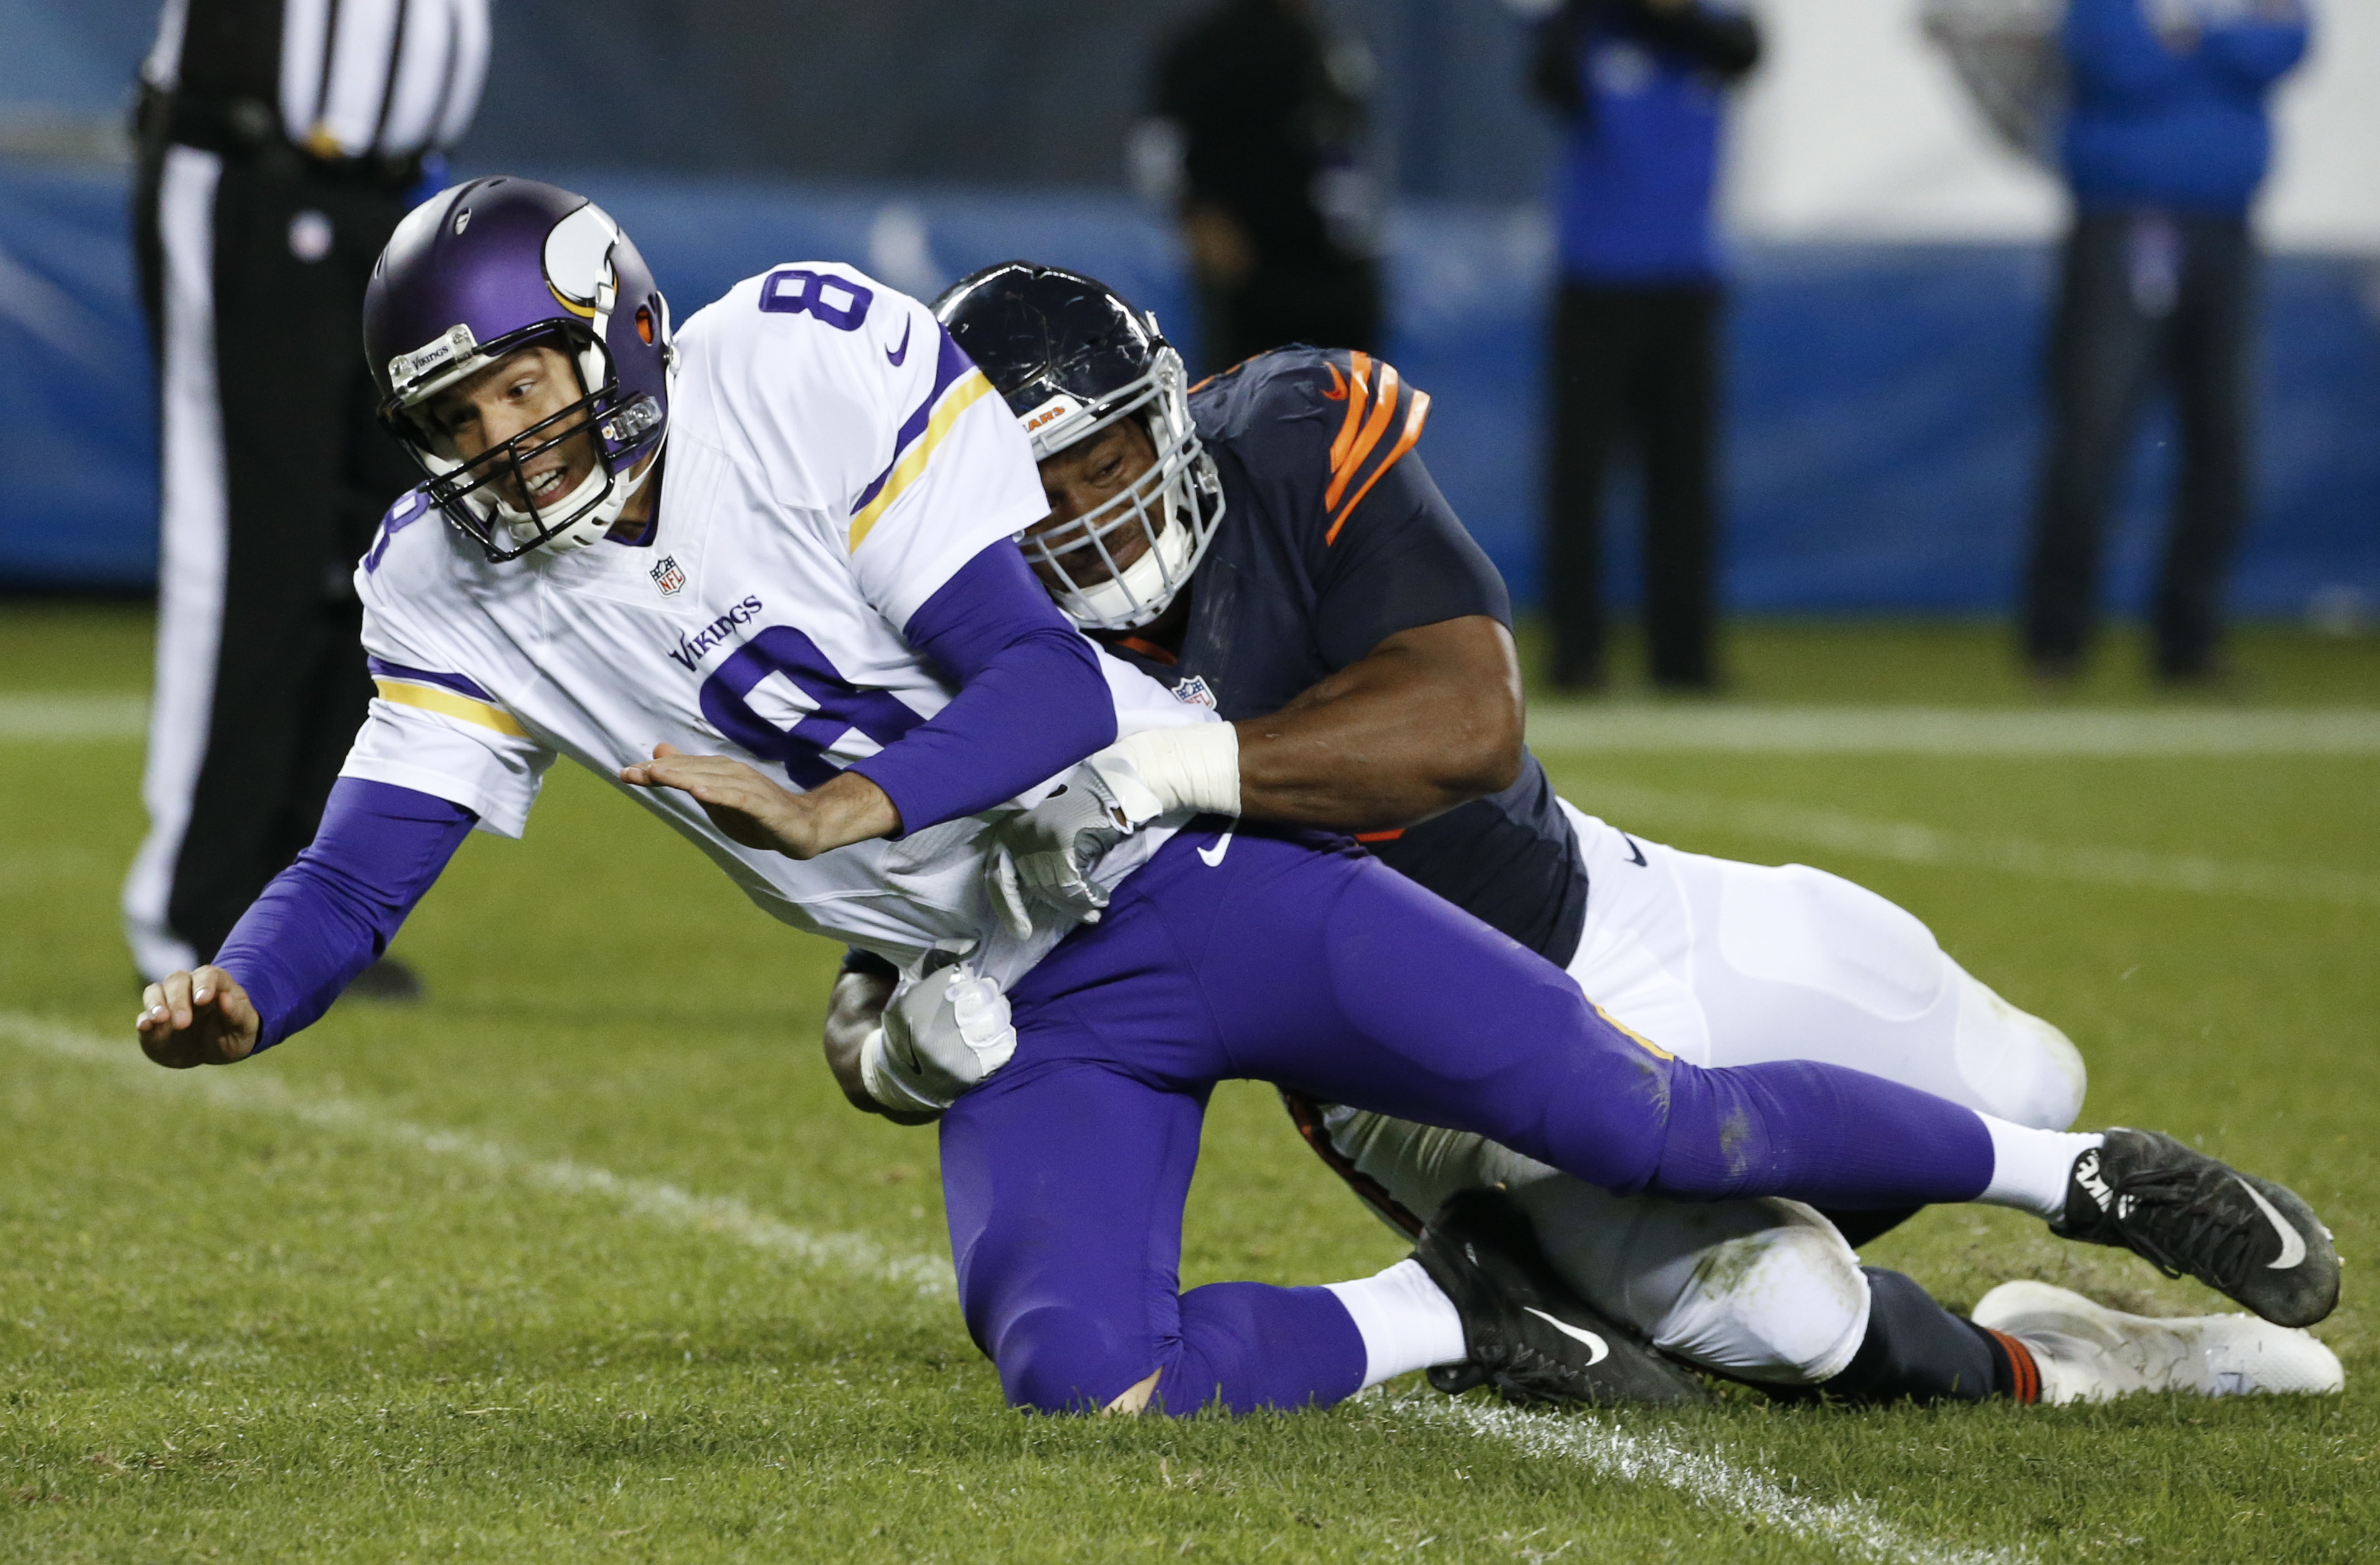 Chicago Bears defensive end Cornelius Washington (90) pressures Minnesota Vikings quarterback Sam Bradford (8) after a throw during the second half of an NFL football game in Chicago, Monday, Oct. 31, 2016. (AP Photo/Nam Y. Huh)